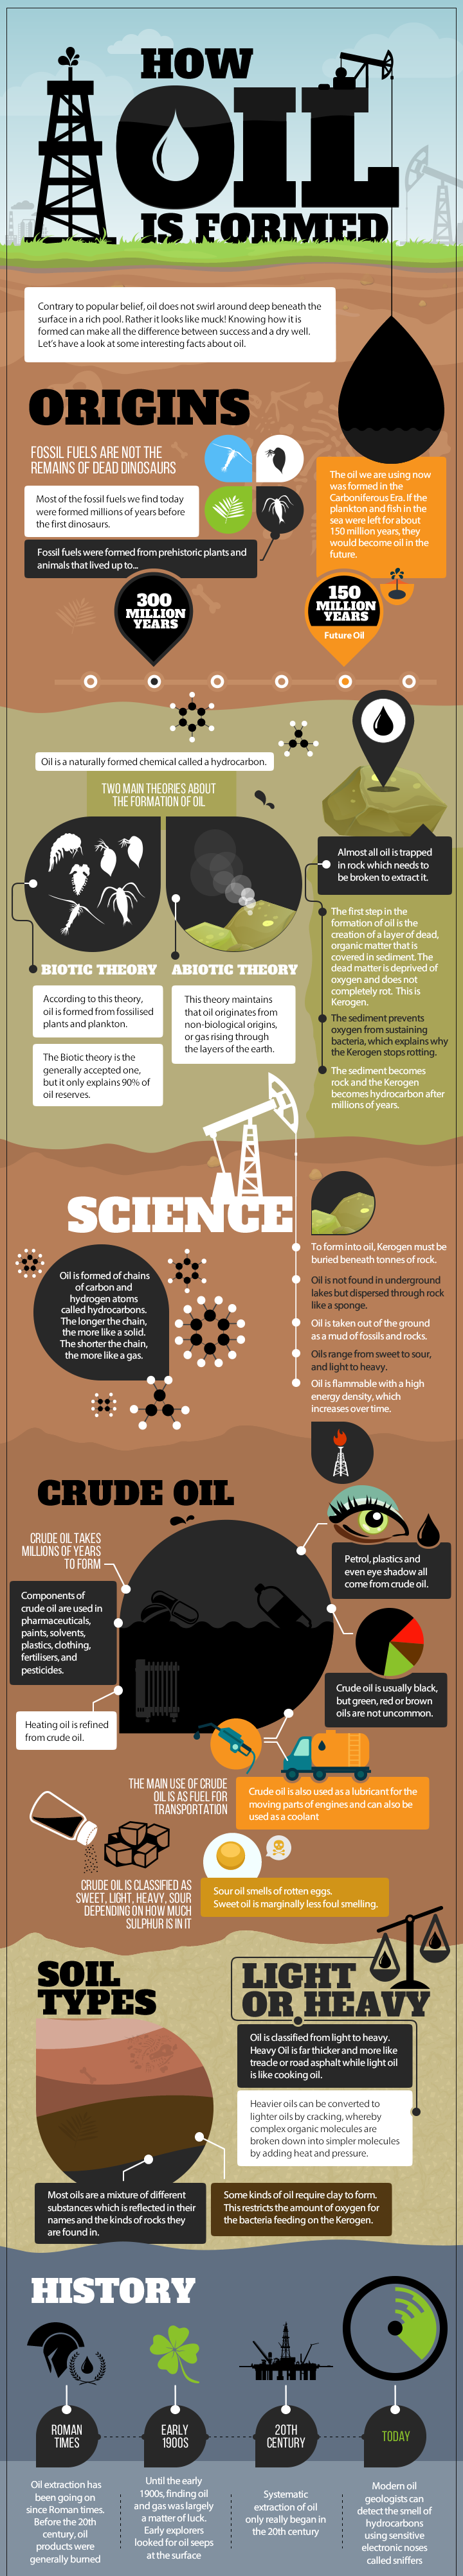 oil-formation